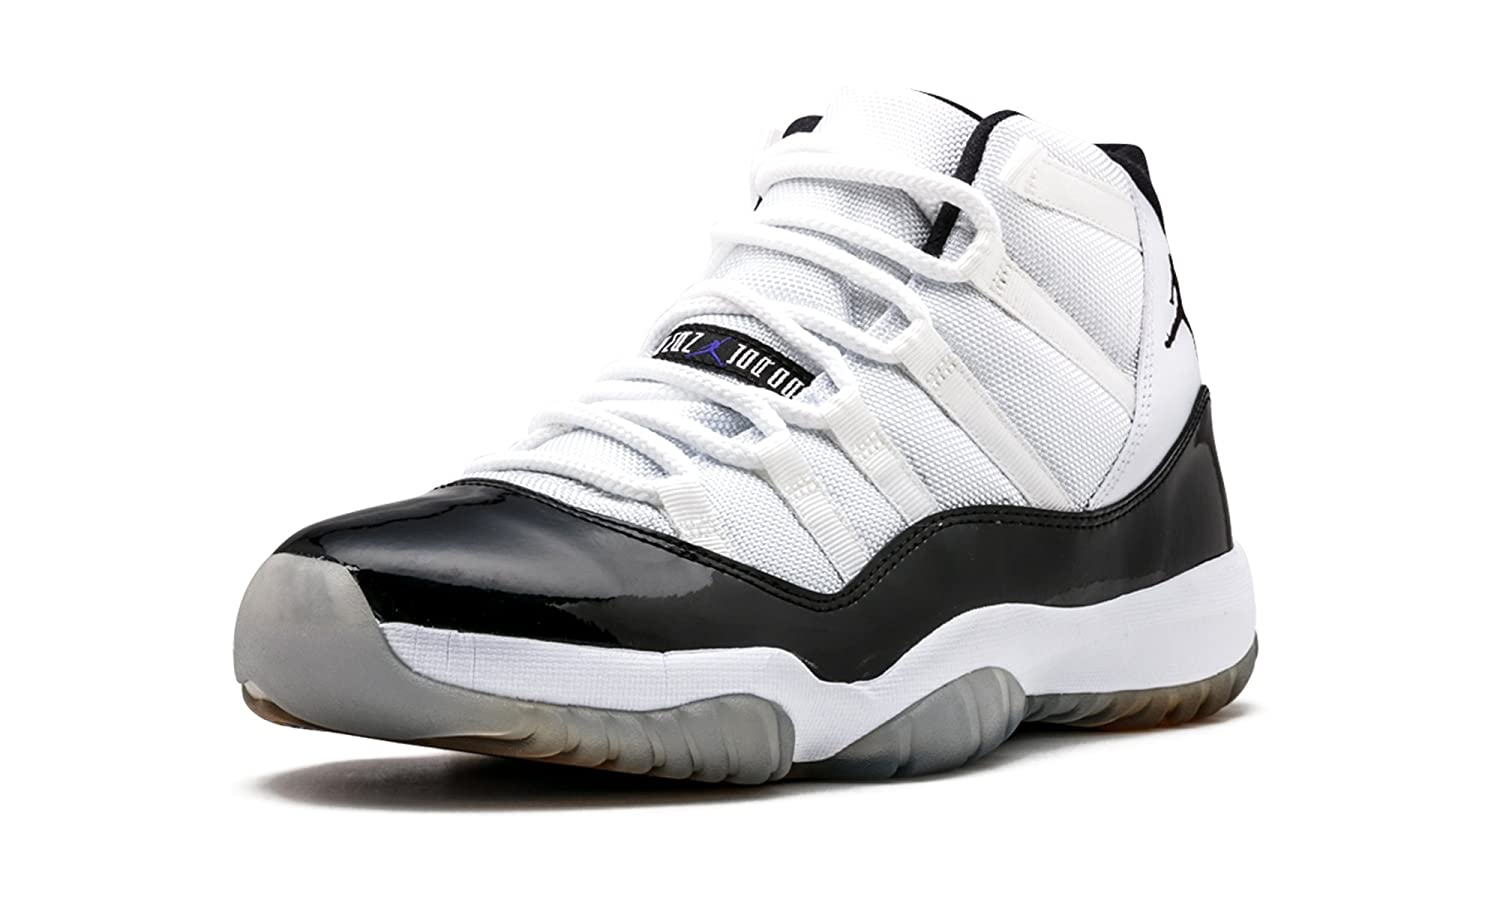 100% authentic bbae4 6bf68 Amazon.com   Jordan Air 11 Retro Inchconcord 2011 Release Mens   Shoes